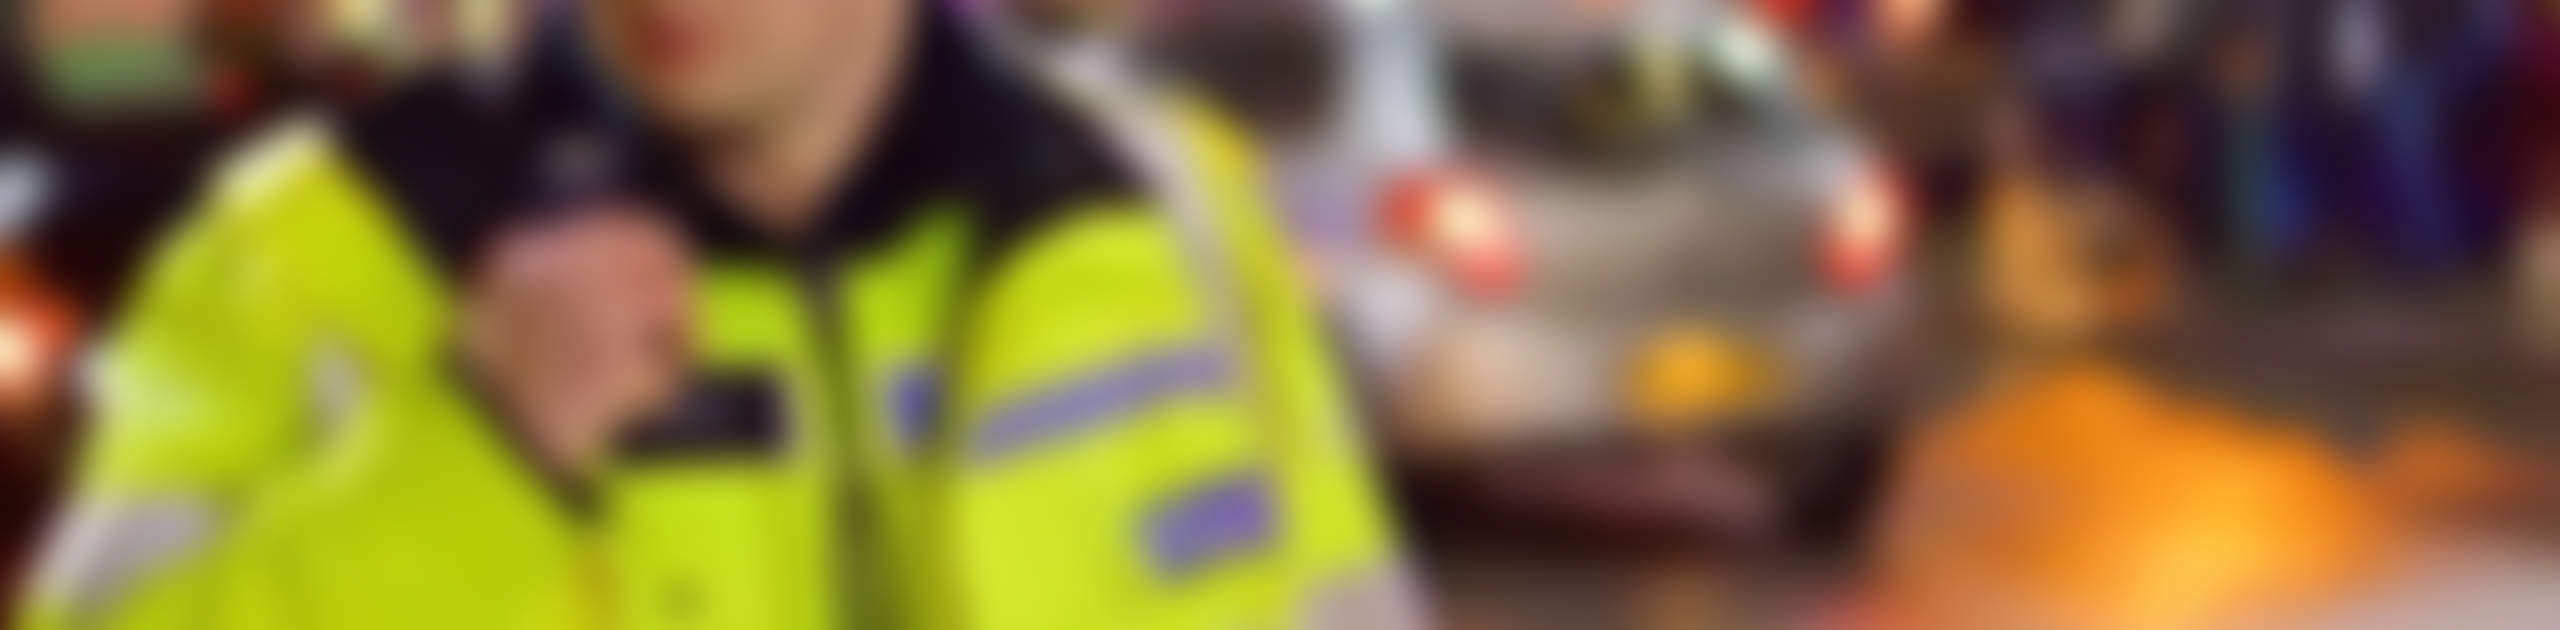 Developing a Police Force's Digital Experience for Citizens